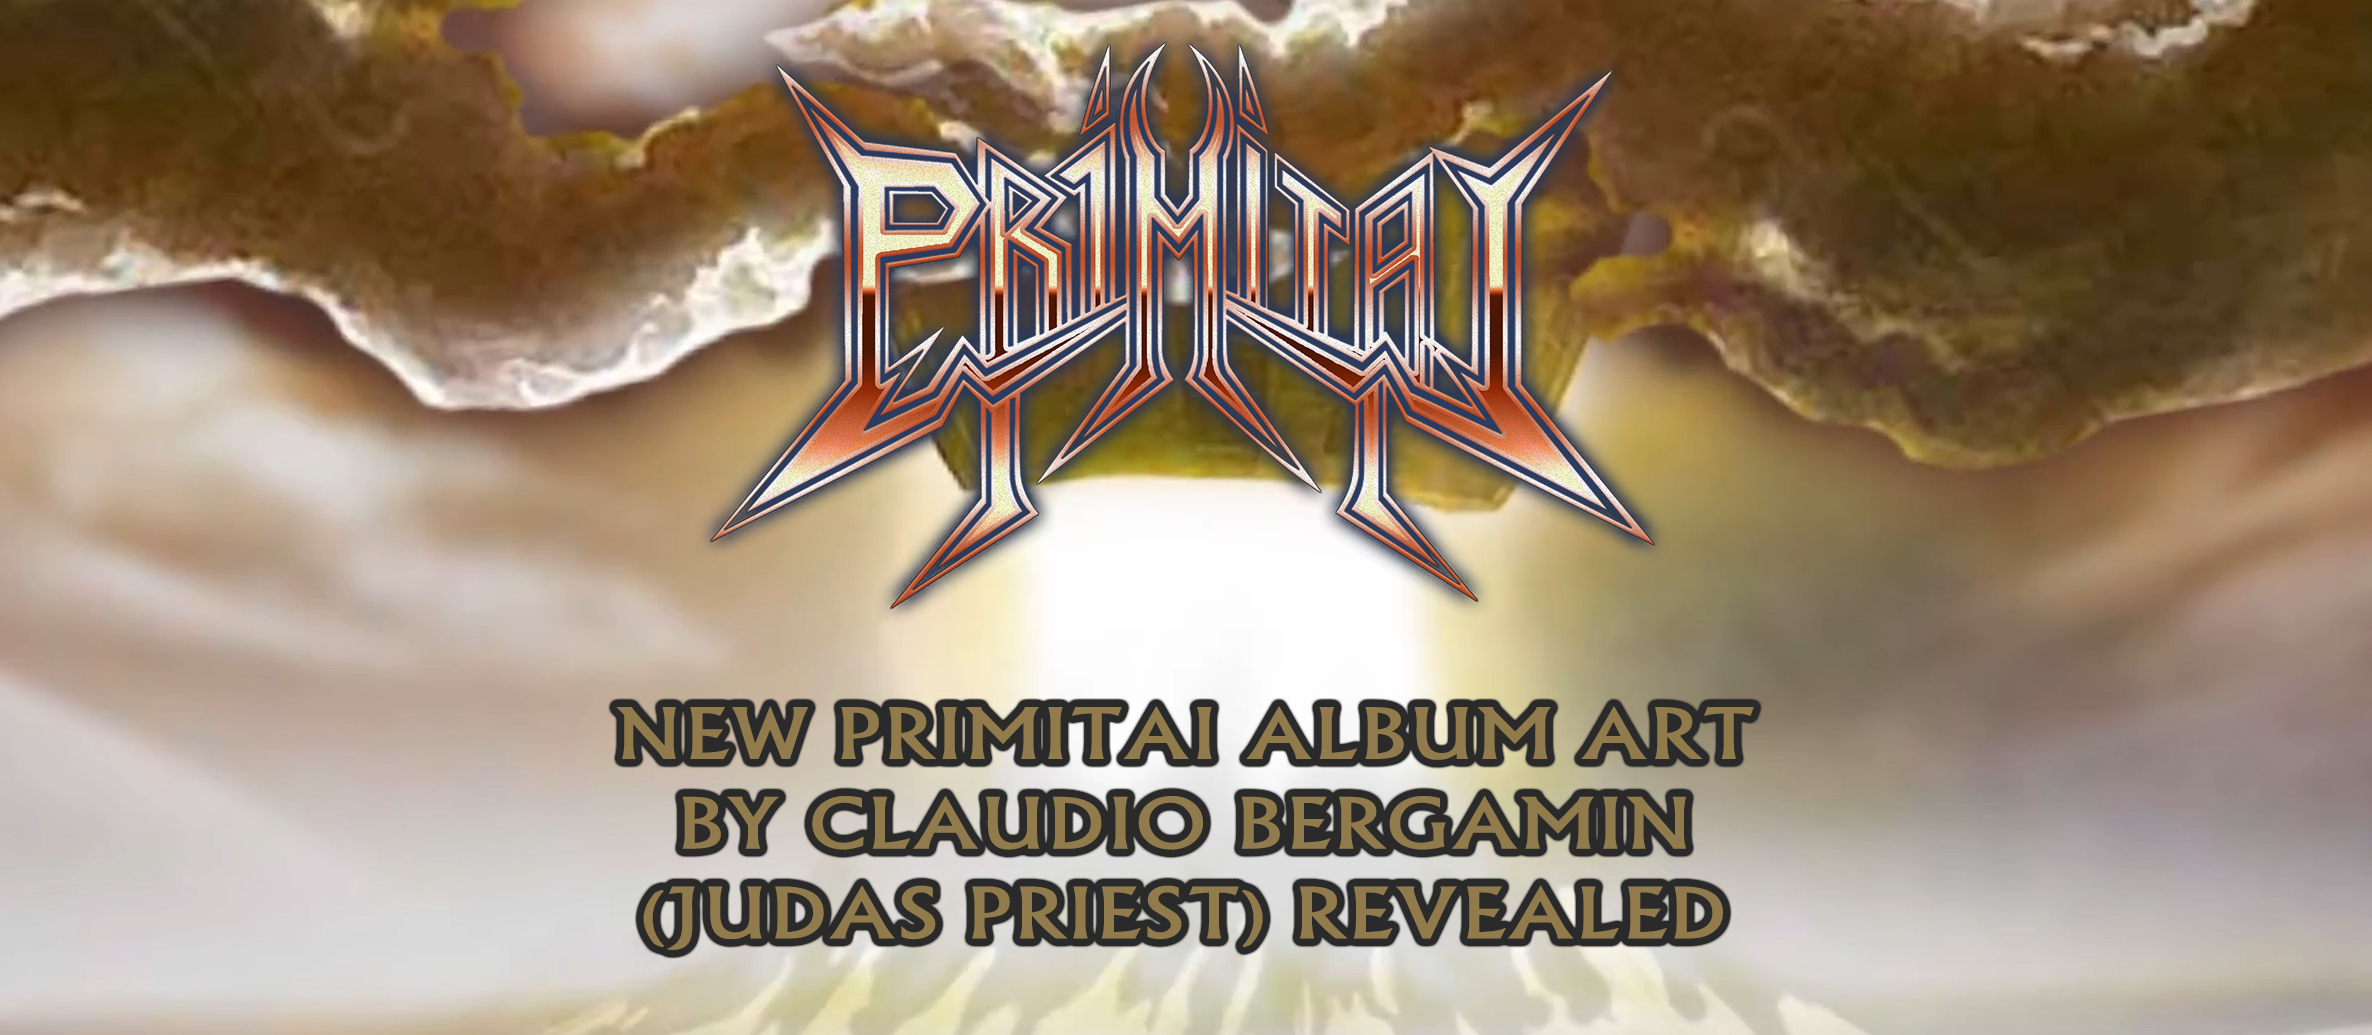 New album art by Claudio Bergamin (JUDAS PRIEST) revealed for upcoming Primitai album 'THE CALLING'!